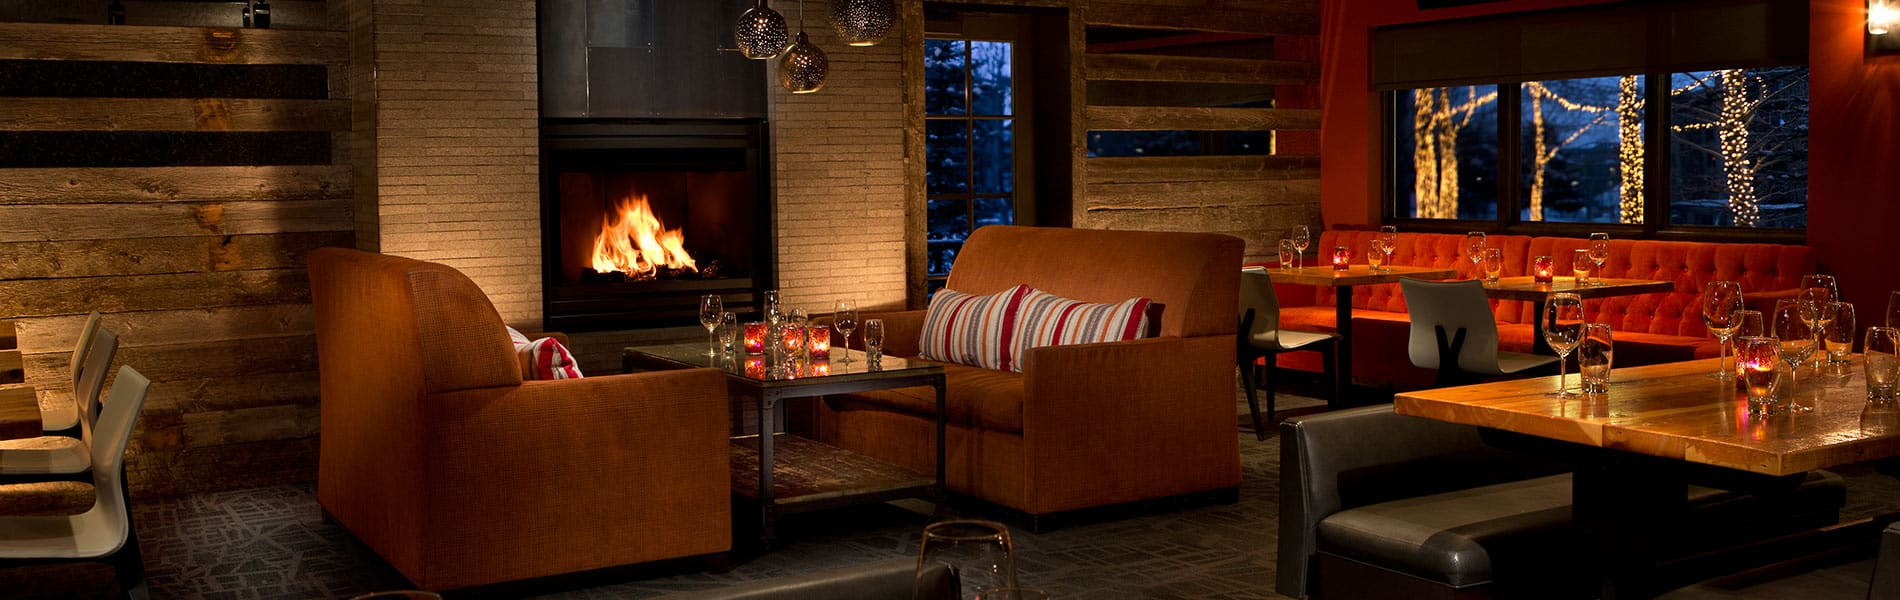 Dining in Jackson Hole